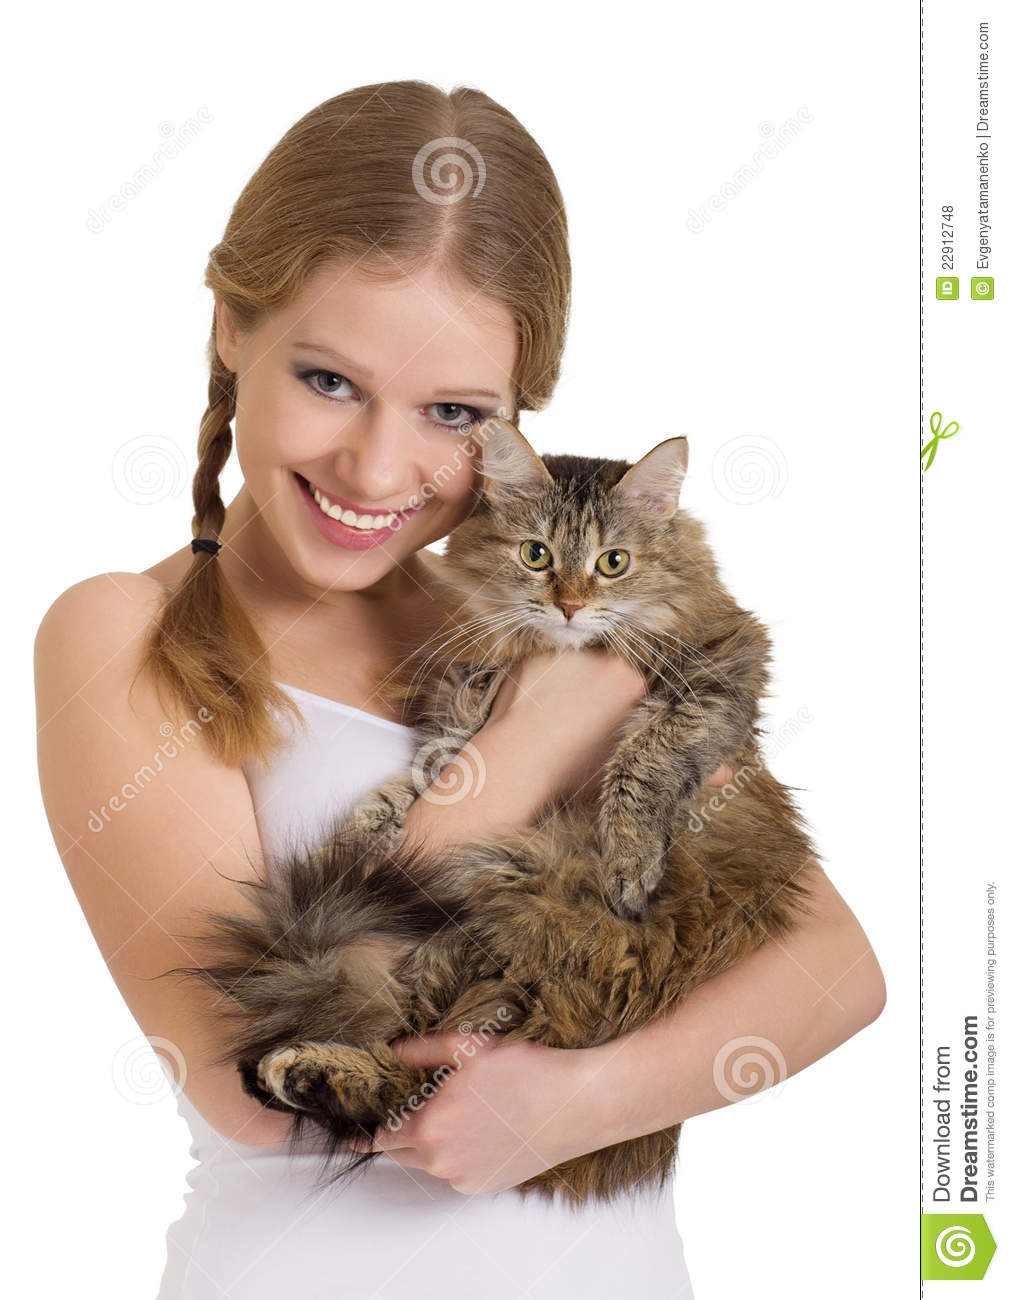 jolie fille avec un chat pelucheux photo stock image du fixation fourrure 22912748. Black Bedroom Furniture Sets. Home Design Ideas